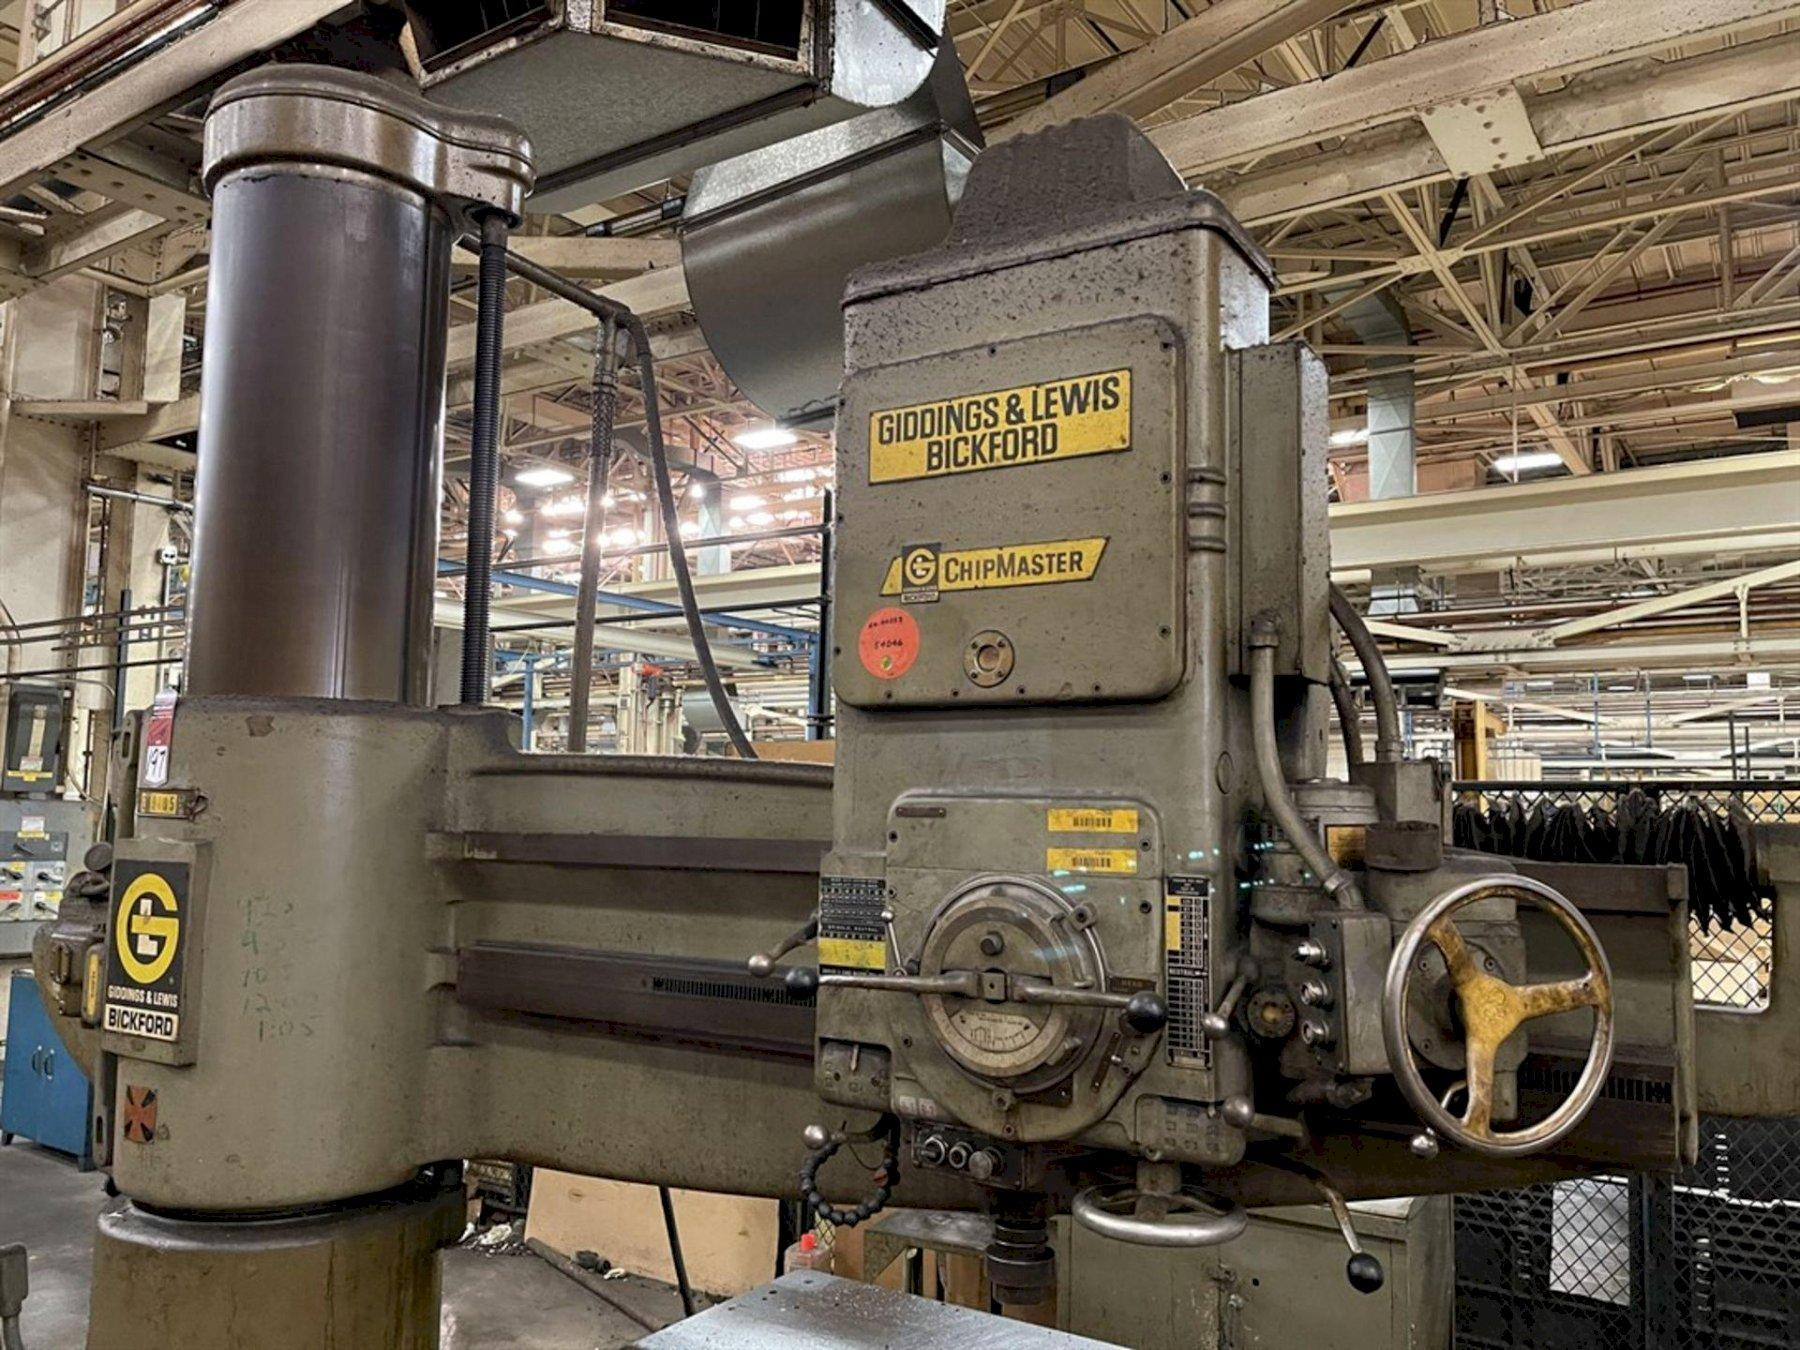 """7' X 19"""" GIDDINGS & LEWIS BICKFORD CHIPMASTER RADIAL ARM DRILL. STOCK # 0520921"""